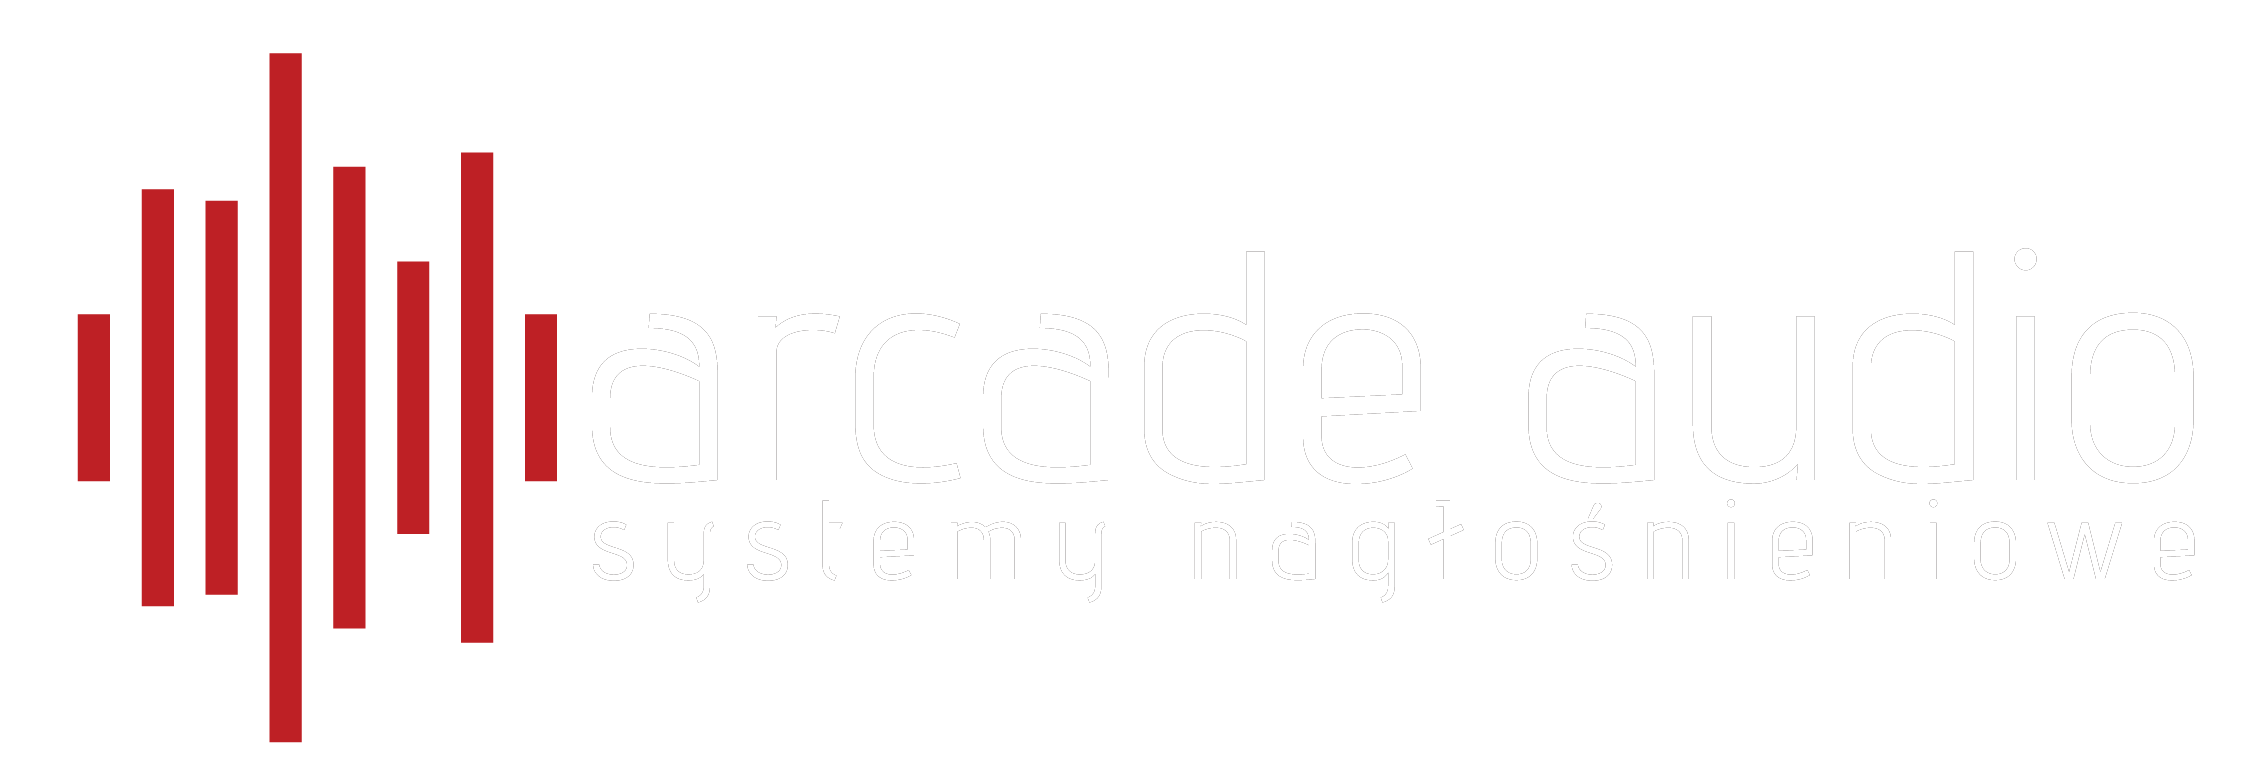 Logo - Arcade Audio sp. z o.o.